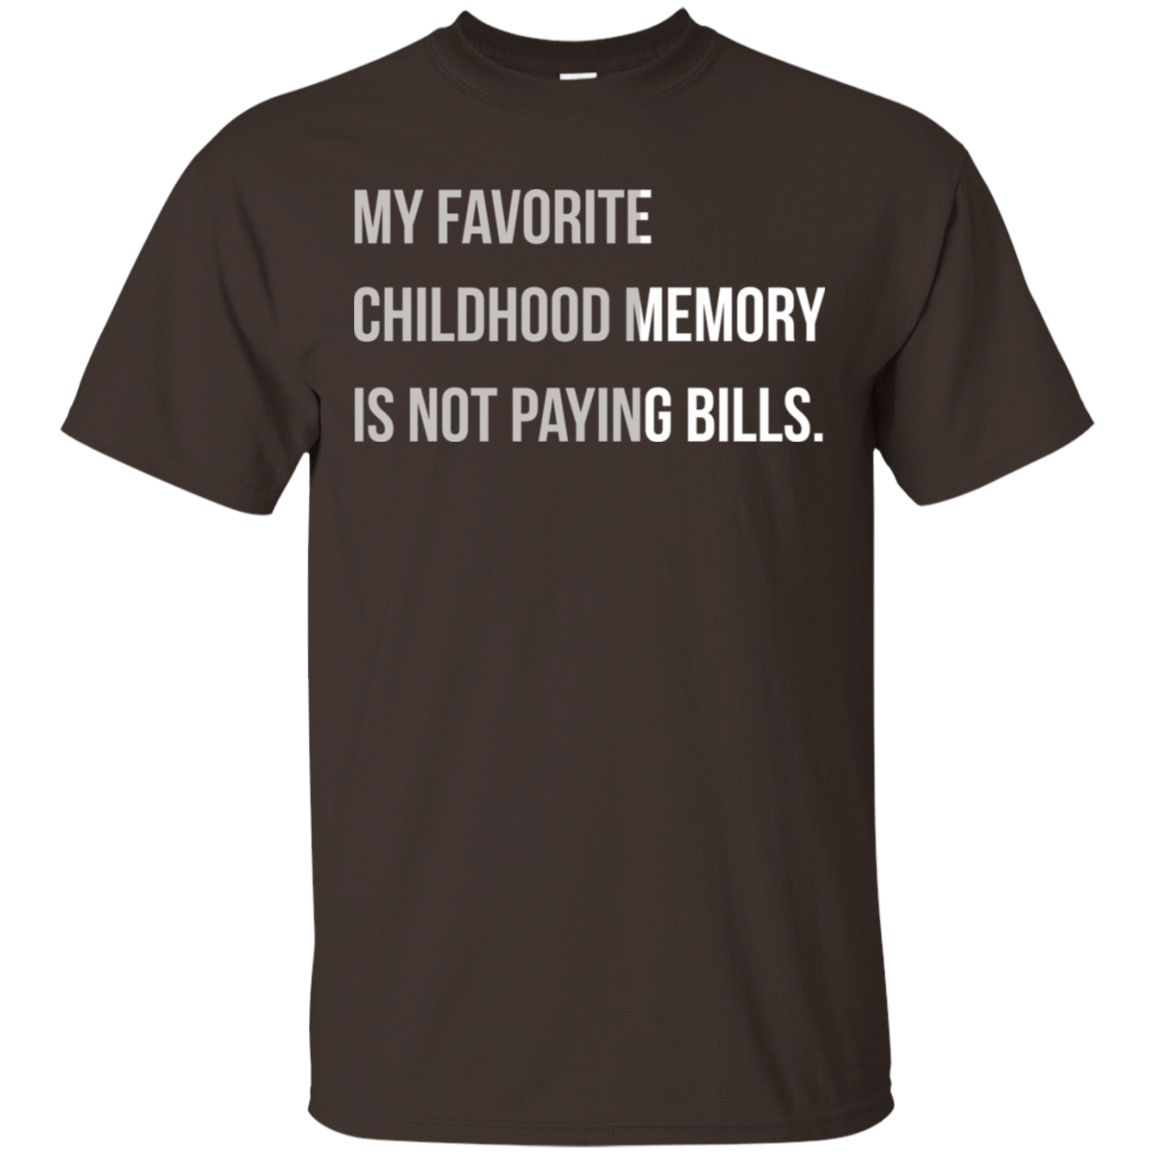 My Favorite Childhood Memory Is Not Paying Bills 22-2283-73421363-12087 - Tee Ript